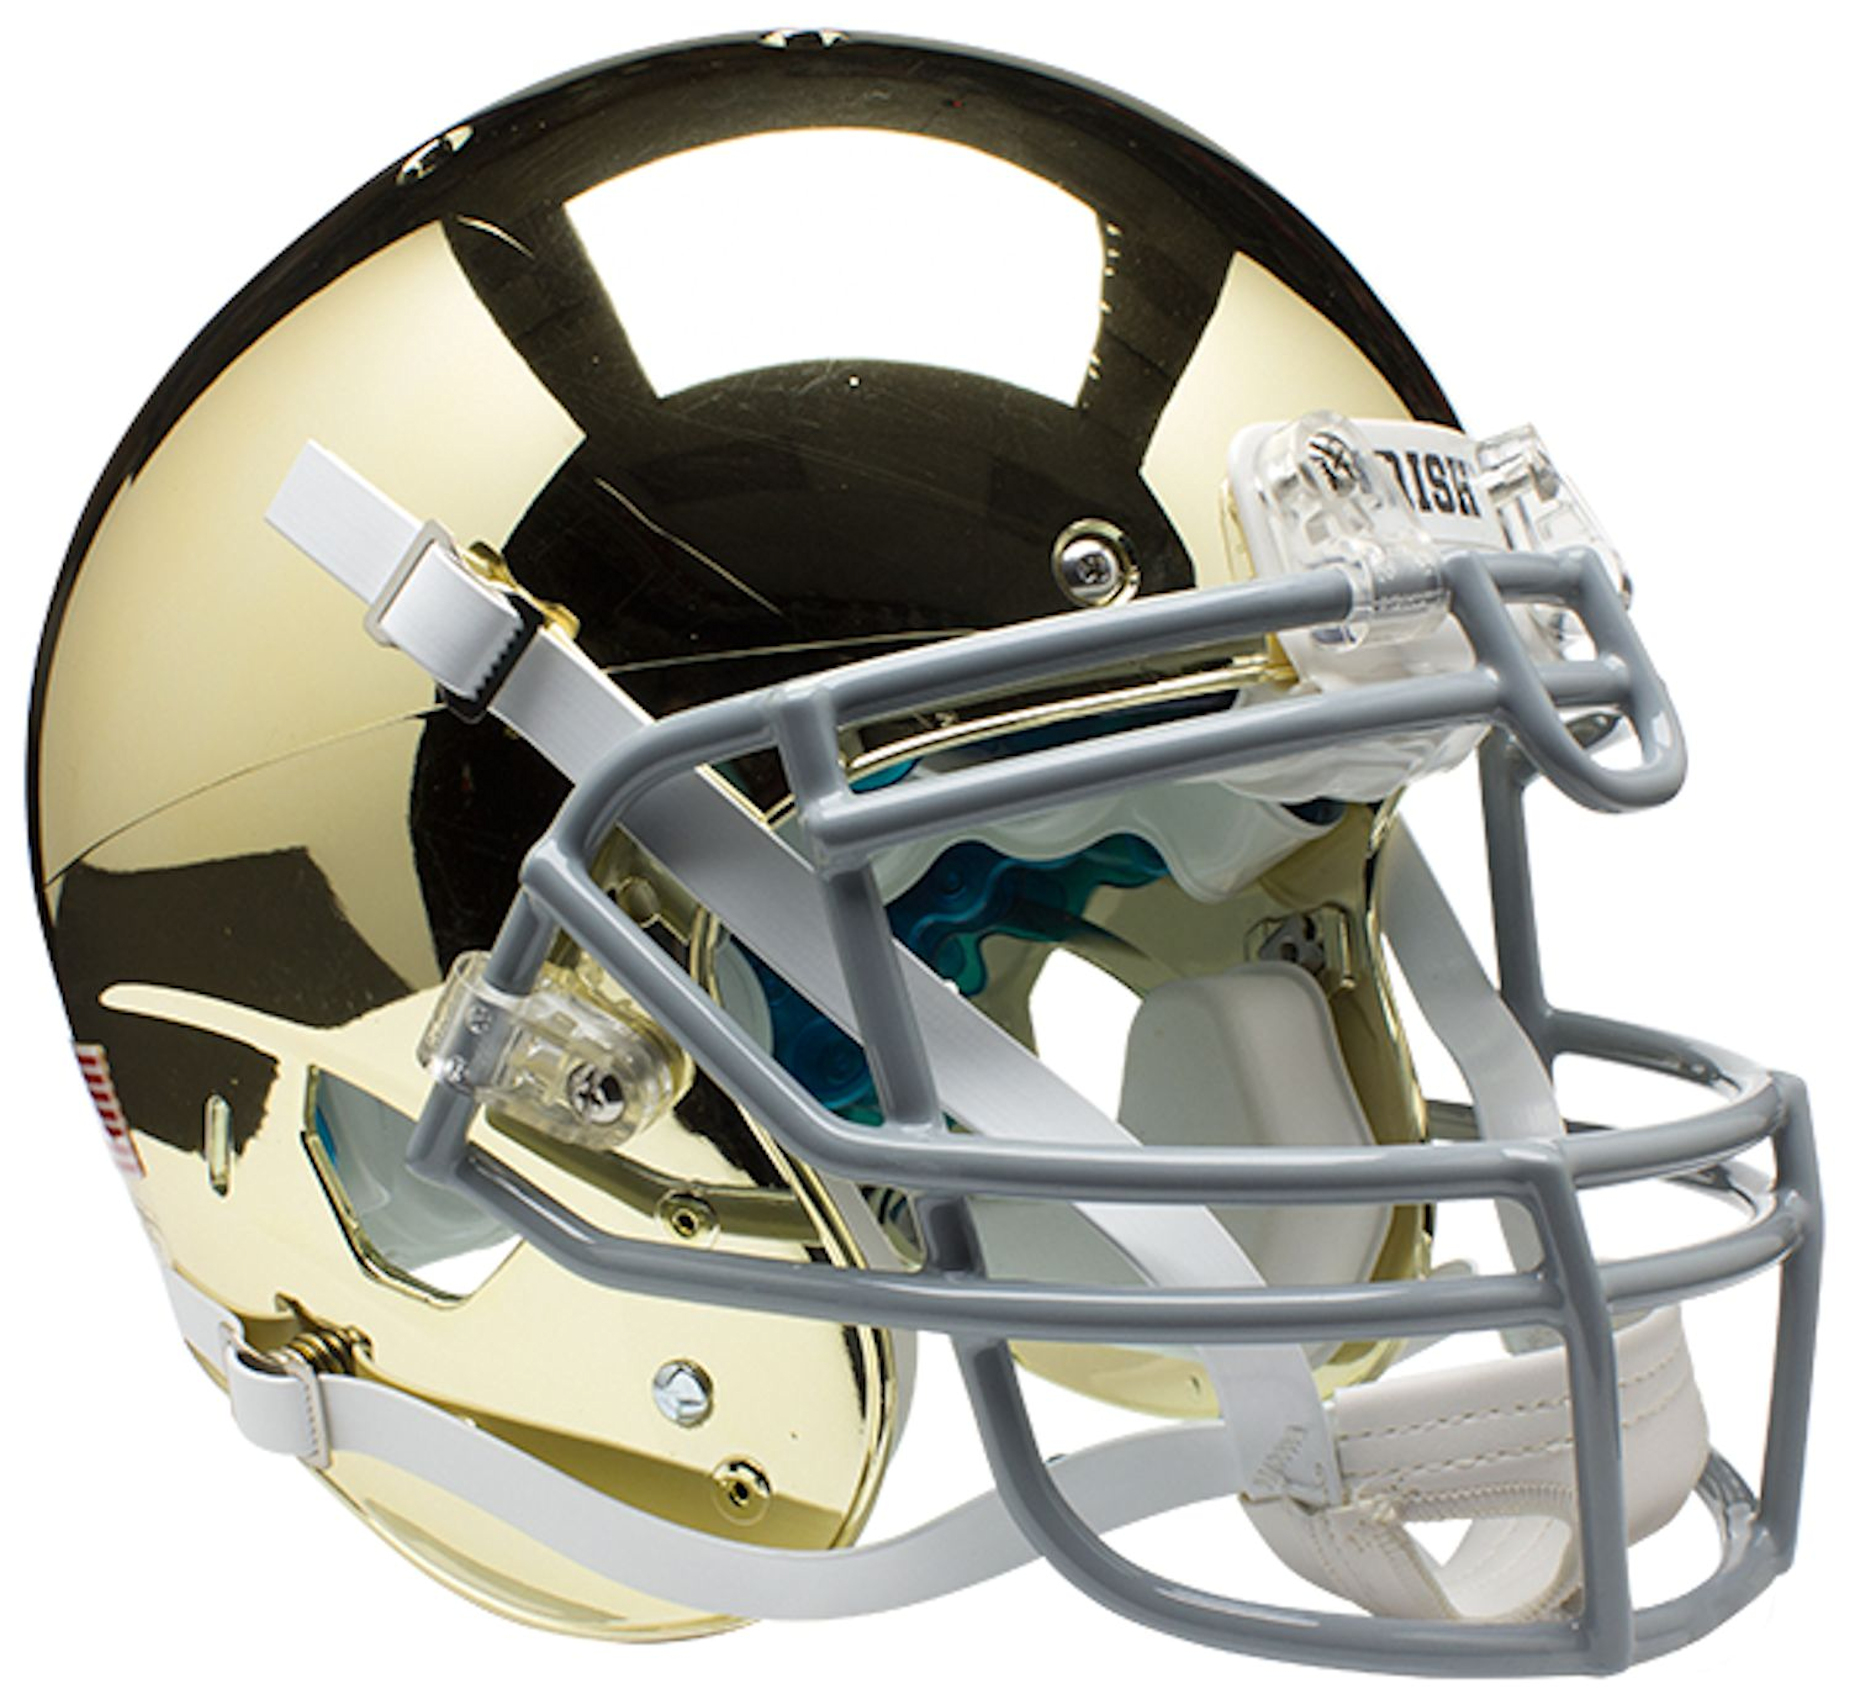 Notre Dame Fighting Irish Authentic College XP Football Helmet Schutt <B>Gold</B>